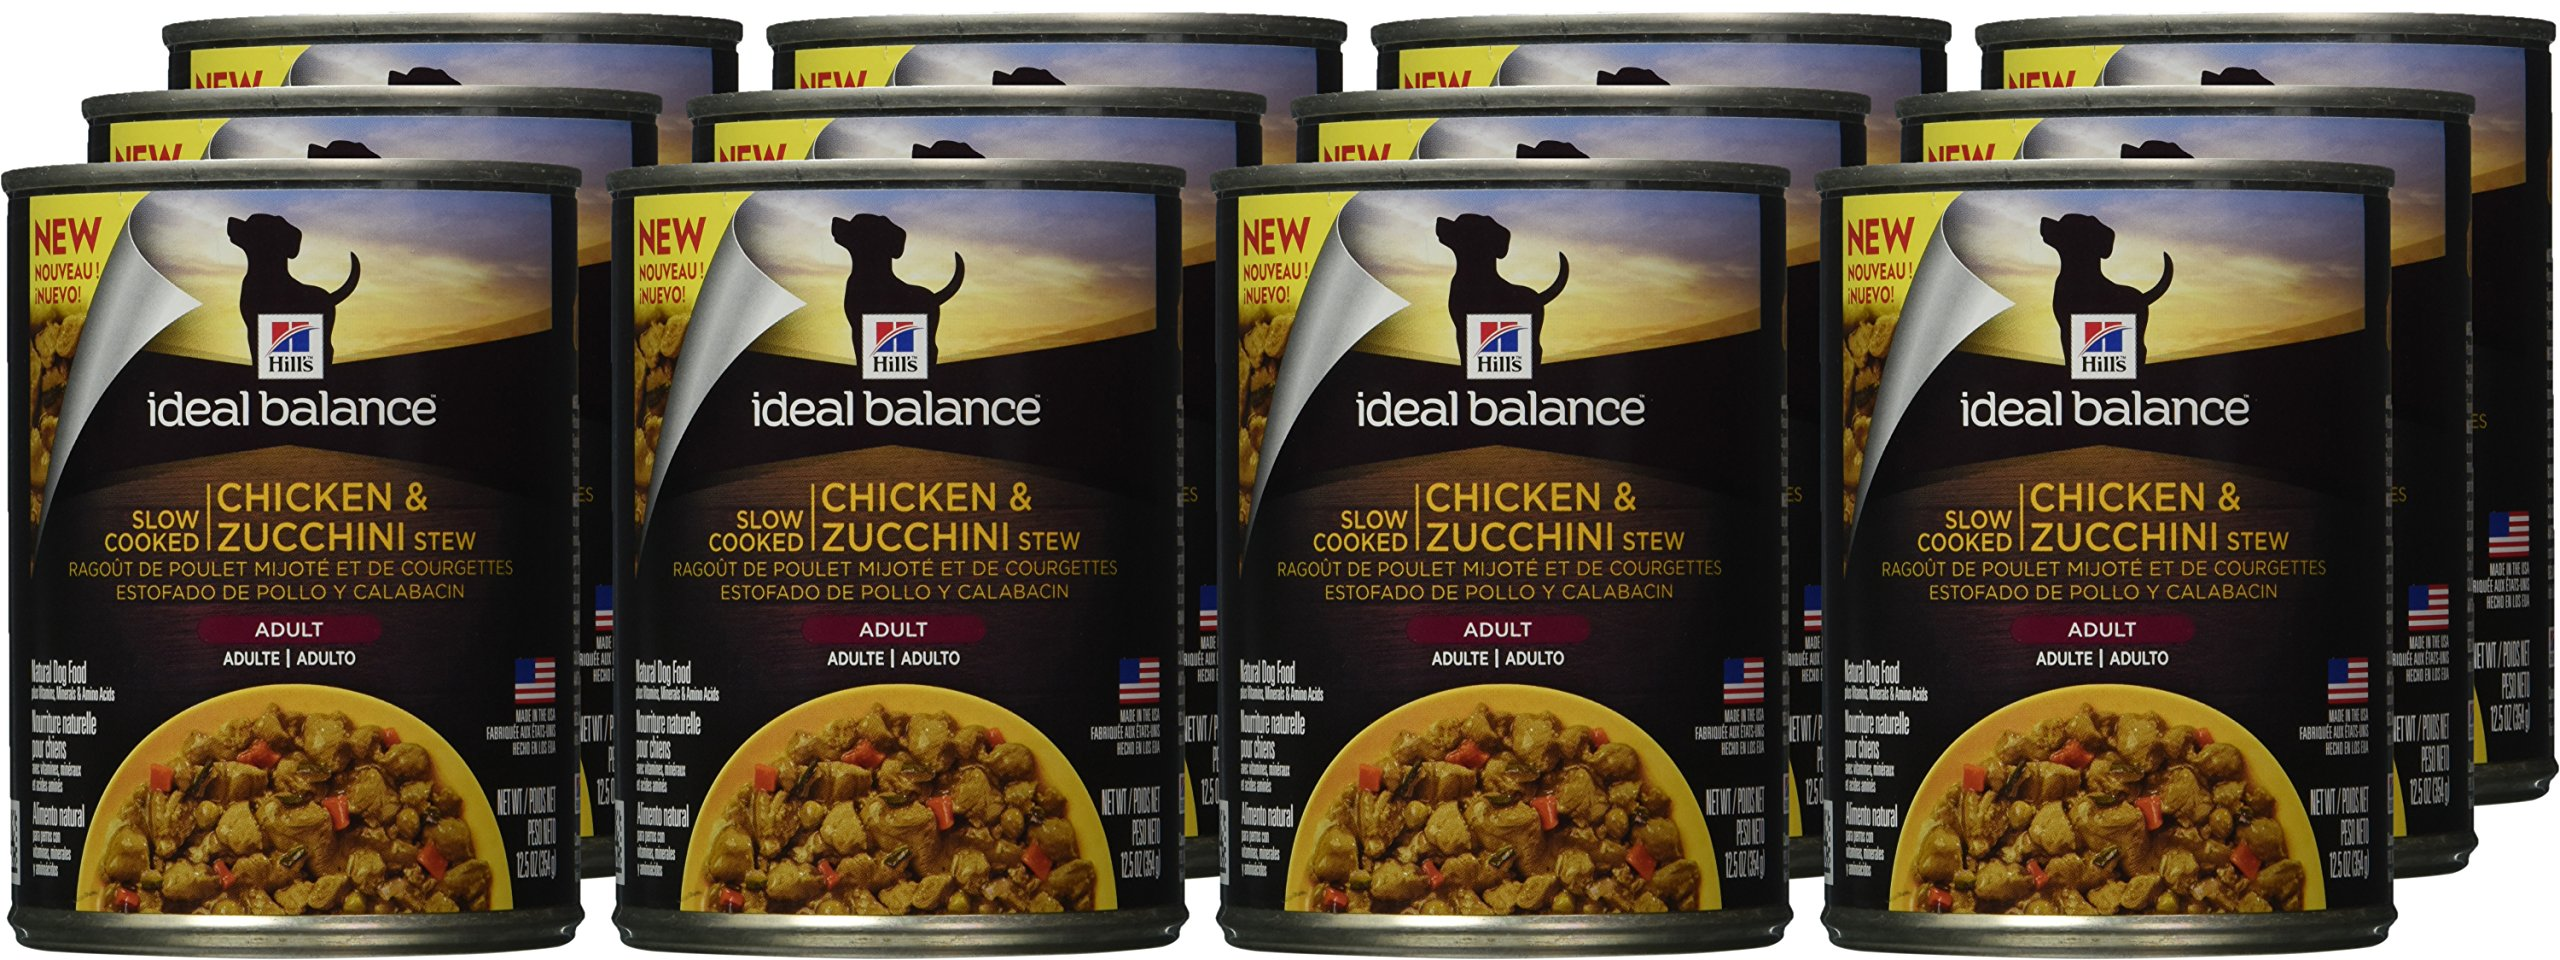 Hill's Ideal Balance Adult Wet Dog Food, Slow Cooked Chicken & Zucchini Stew Canned Dog Food, 12.5 oz, 12 Pack by Hill's Ideal Balance (Image #2)